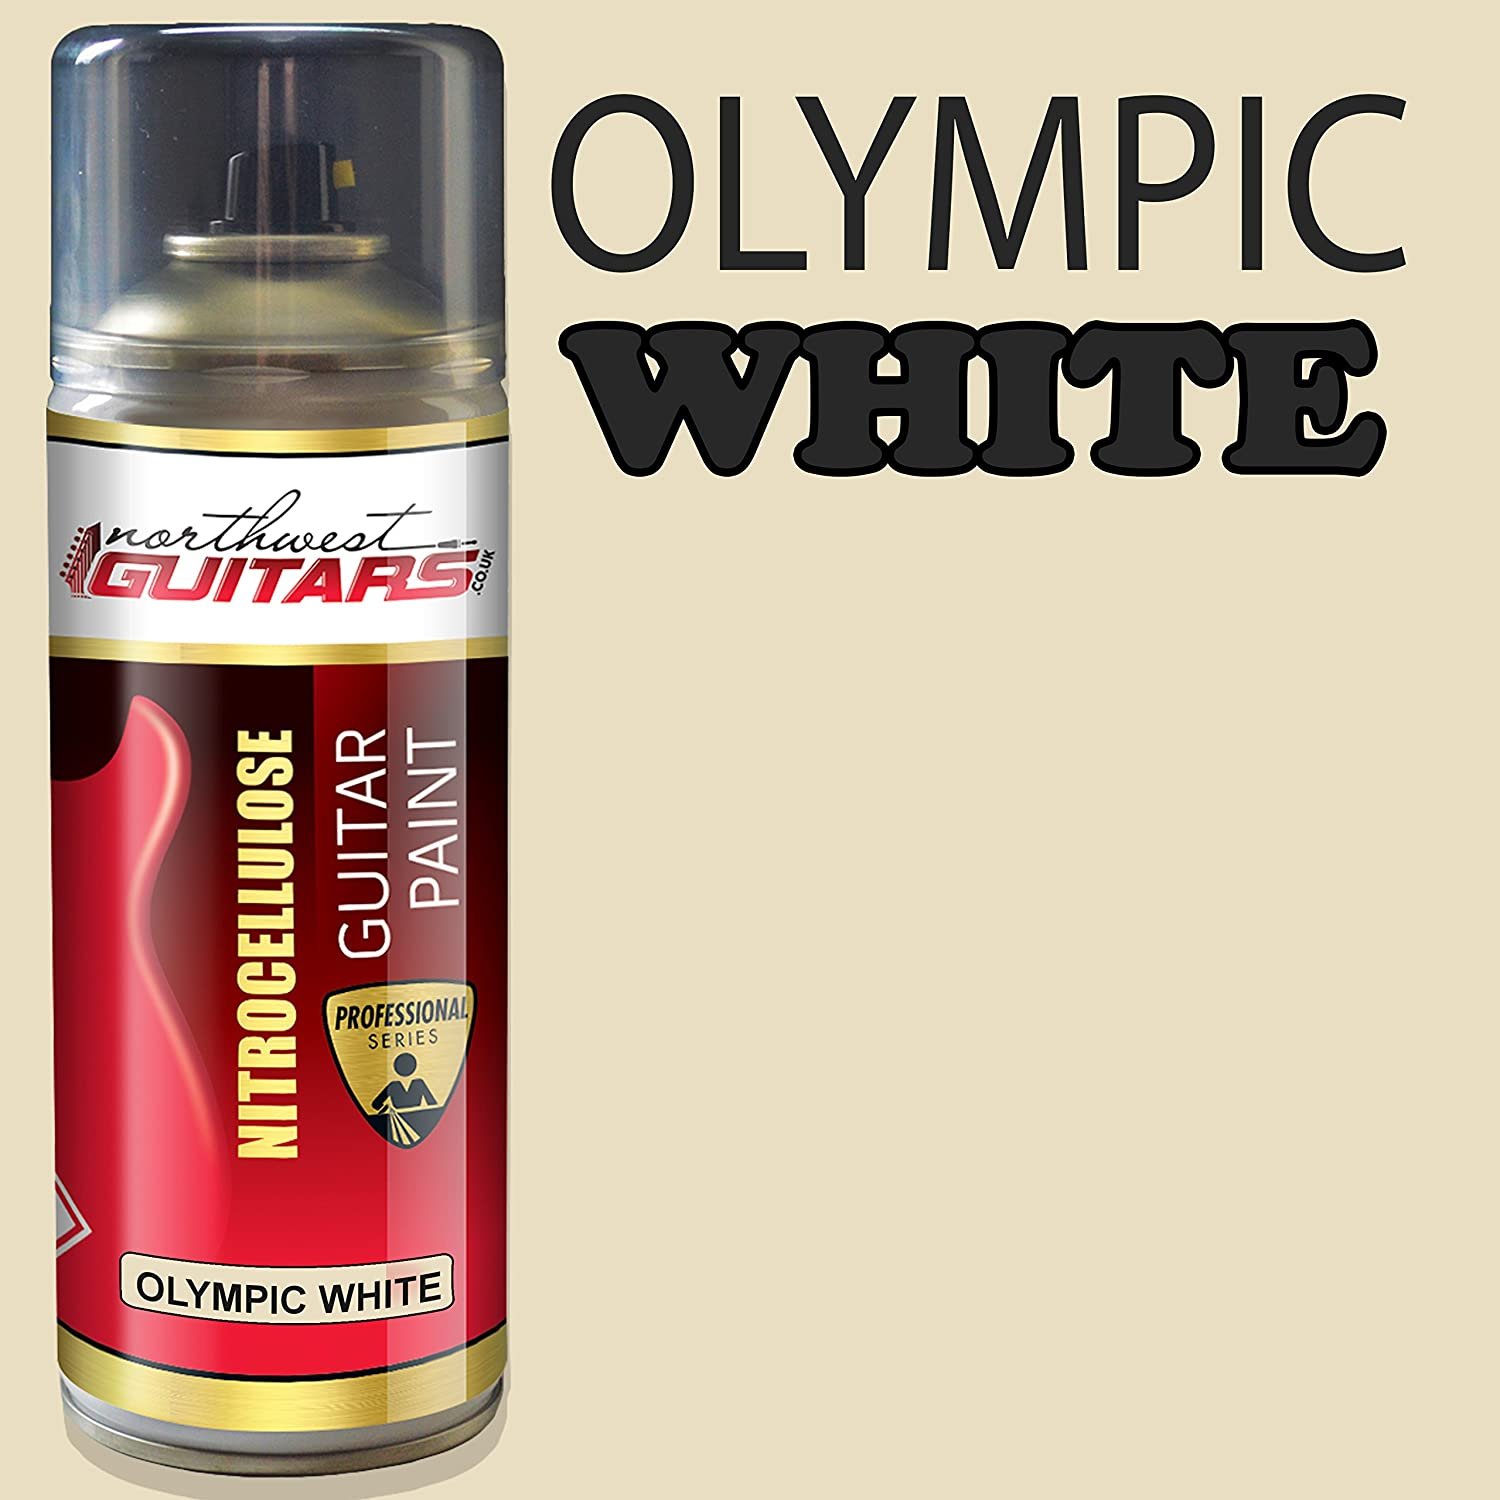 Olympic White Nitrocellulose Guitar Paint//Lacquer 400ml